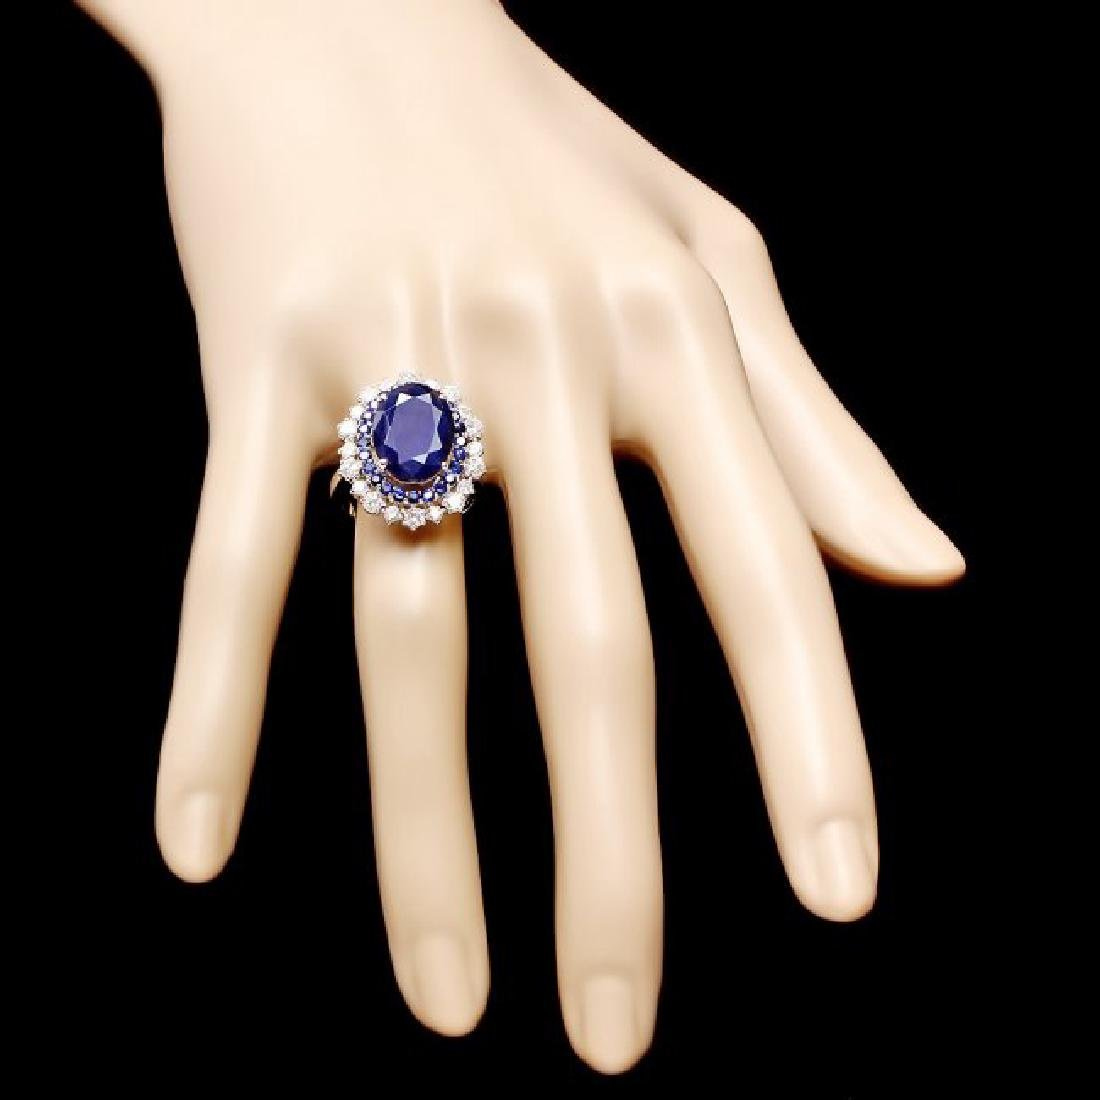 14k White Gold 7.2ct Sapphire 1.00ct Diamond Ring - 4